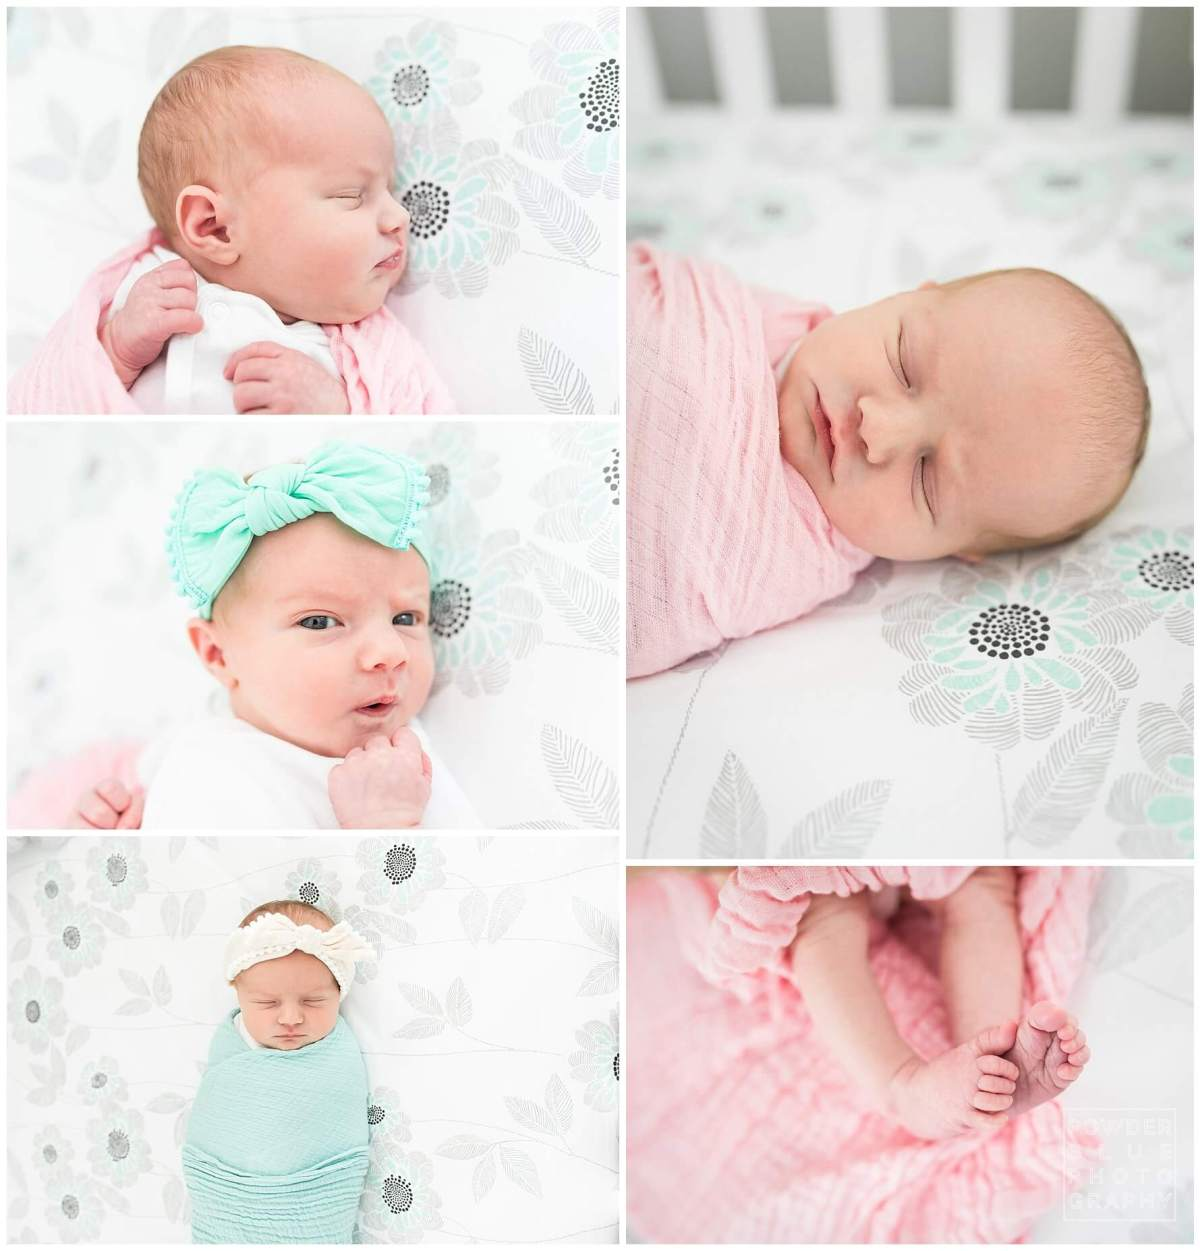 pittsburgh newborn photographer. simple, natural newborn portrait on location. baby girl. in crib. printed sheets. newborn feet. no props.